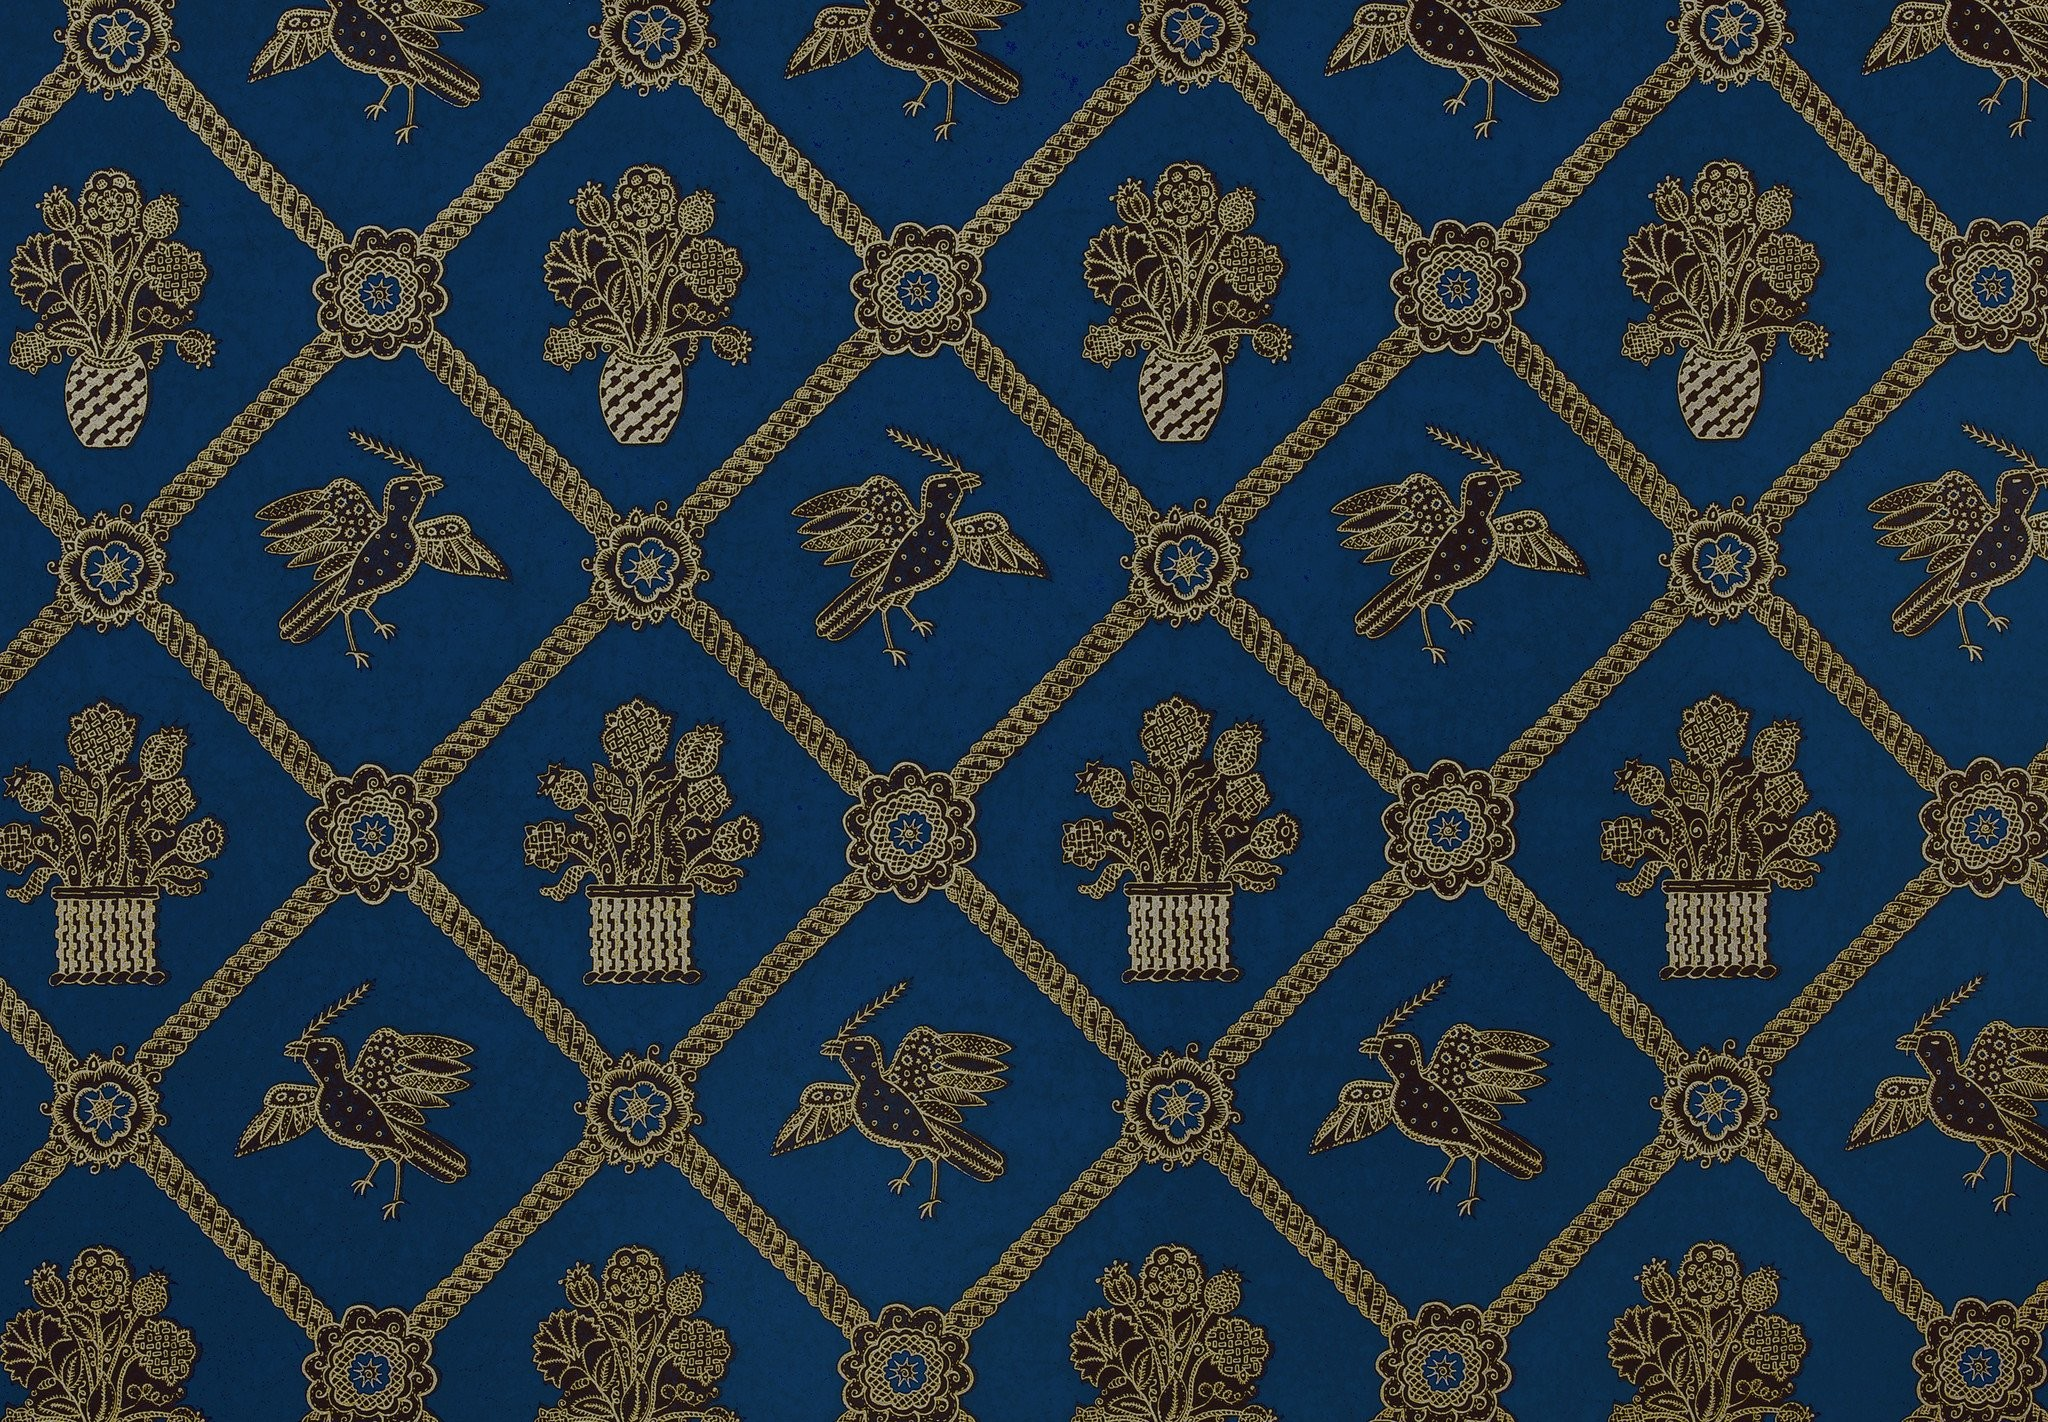 2048x1422 Rope Trellis Wallpaper - Royal Blue / Black / Gold Metallic